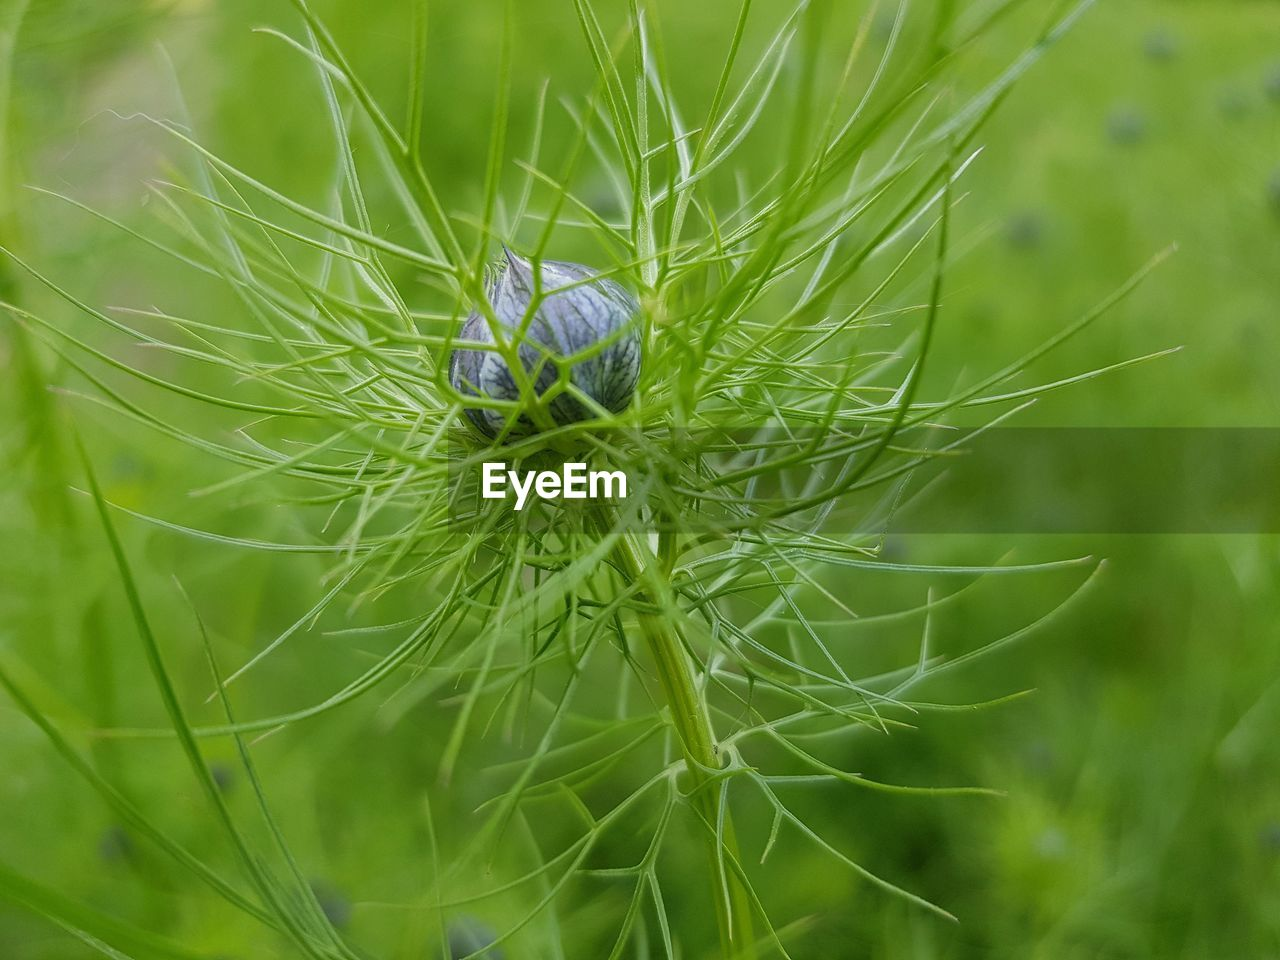 plant, green color, close-up, growth, nature, selective focus, day, no people, one animal, animals in the wild, beauty in nature, animal wildlife, focus on foreground, animal themes, animal, invertebrate, outdoors, fragility, insect, vulnerability